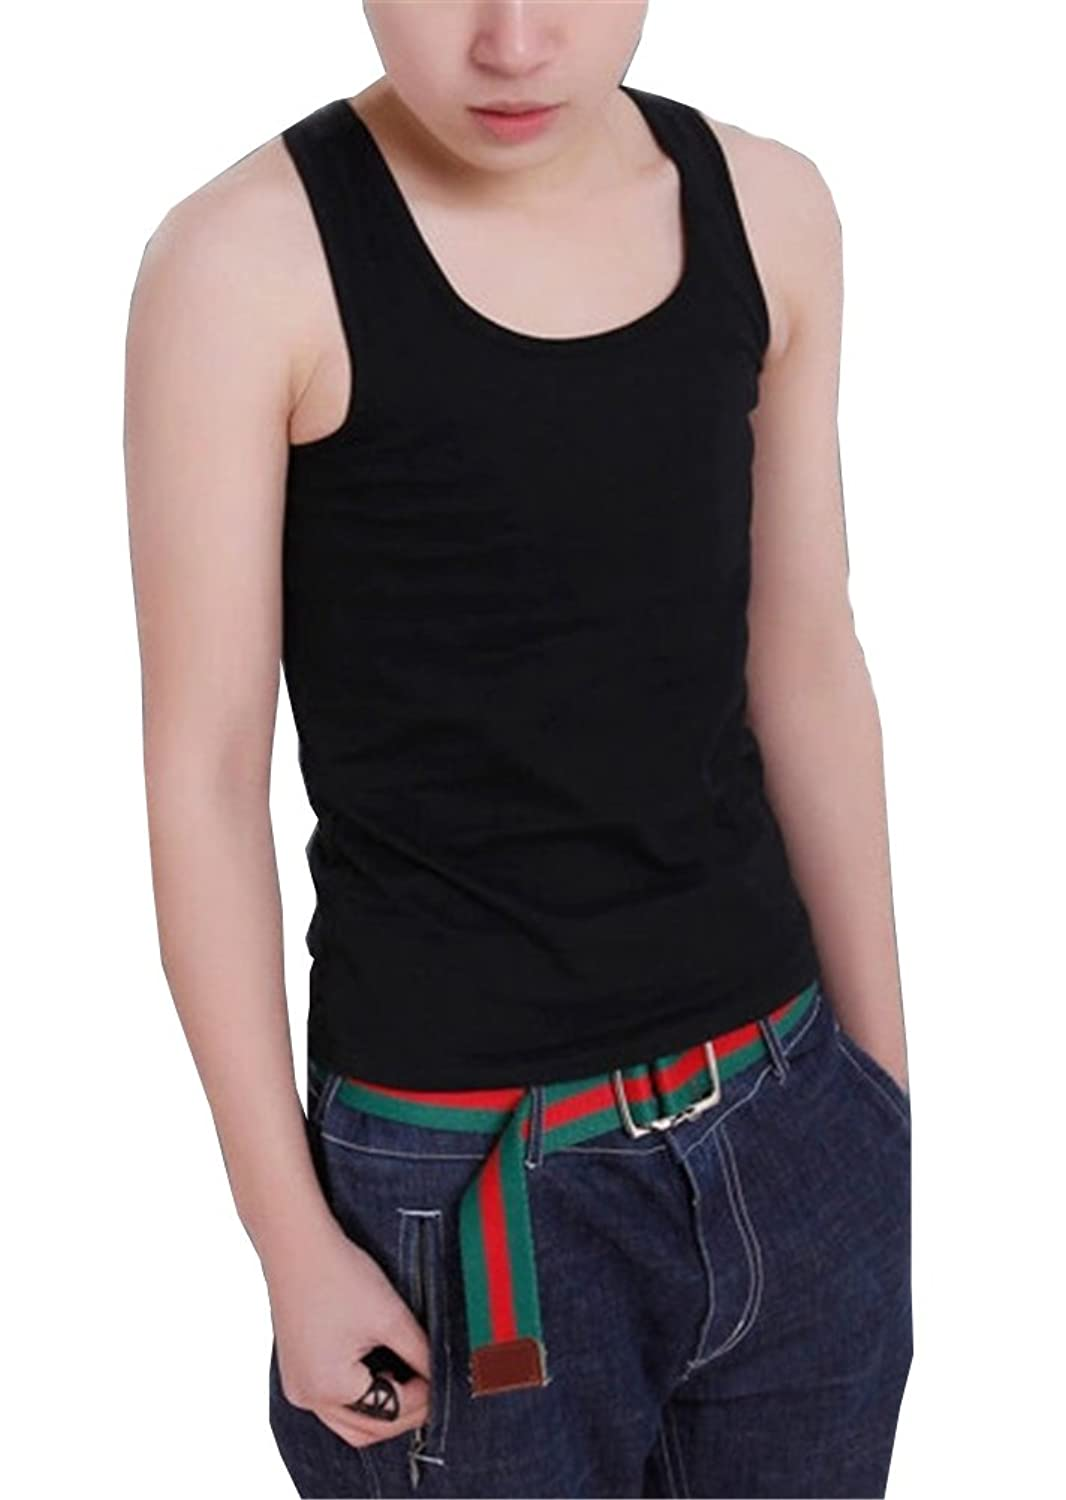 Super Flat Les Lesbian Tomboy Compression 3 Rows Clasp Chest Binders Tank Tops